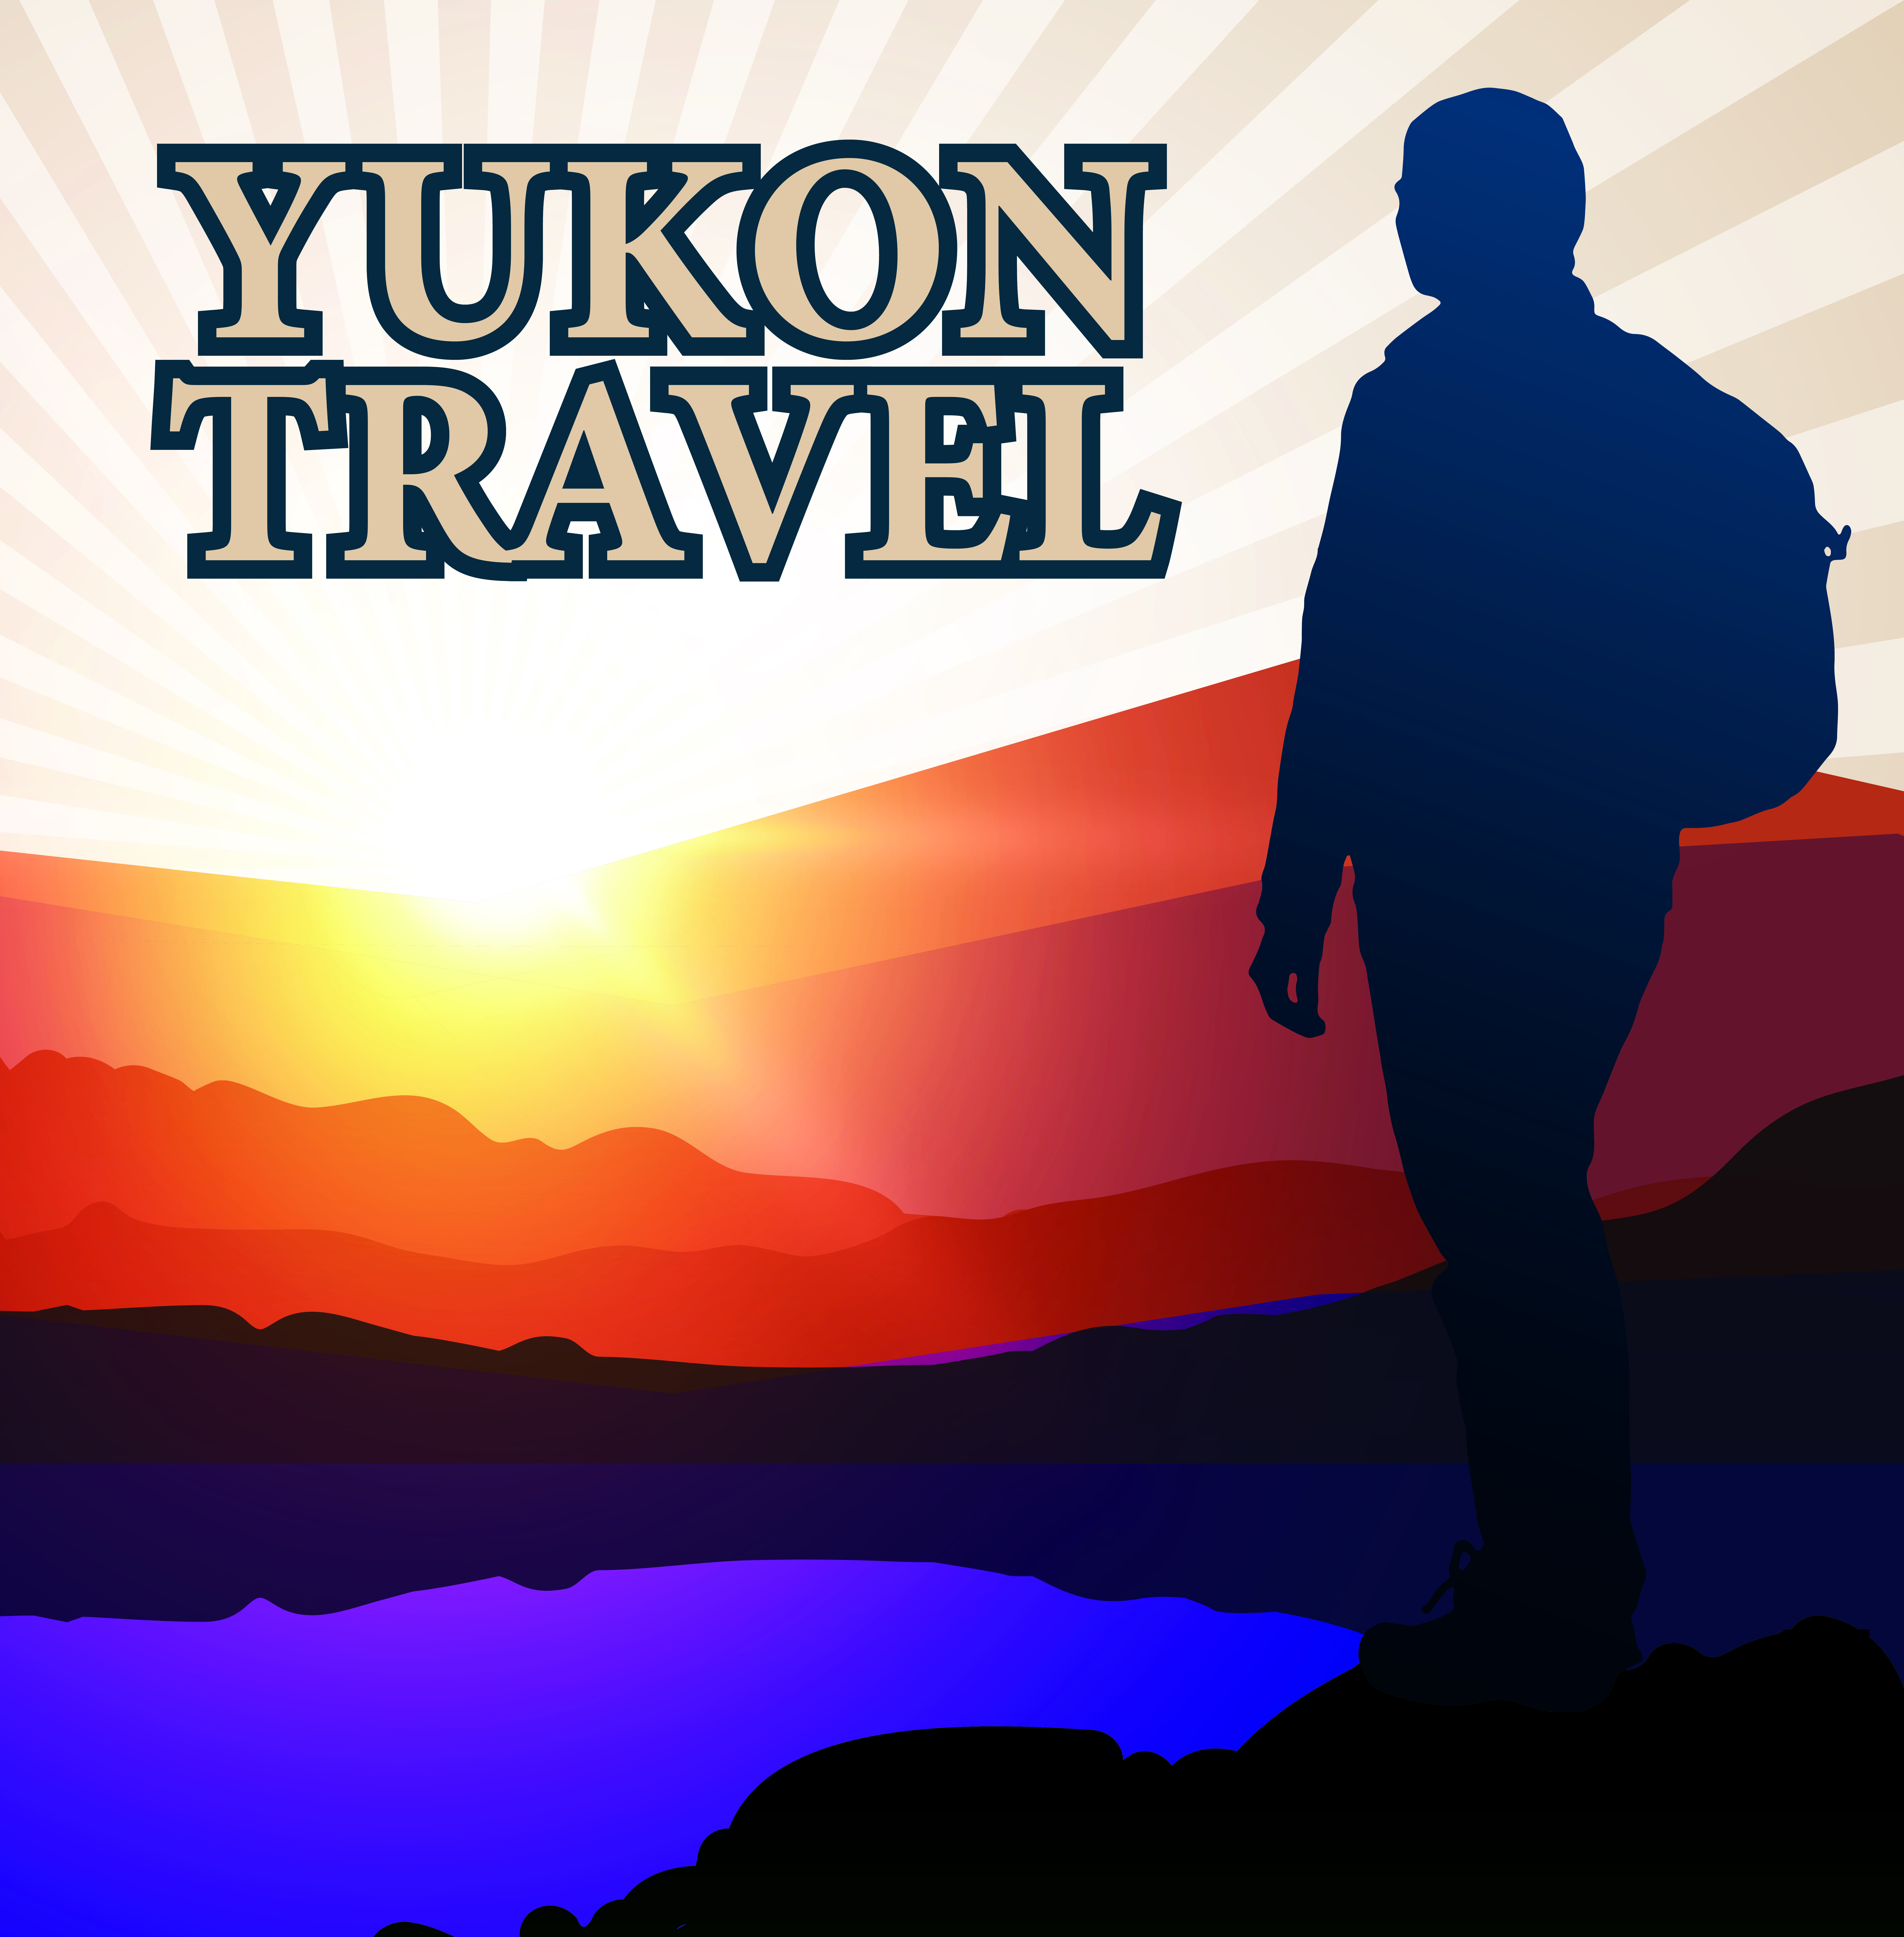 Yukon Travel